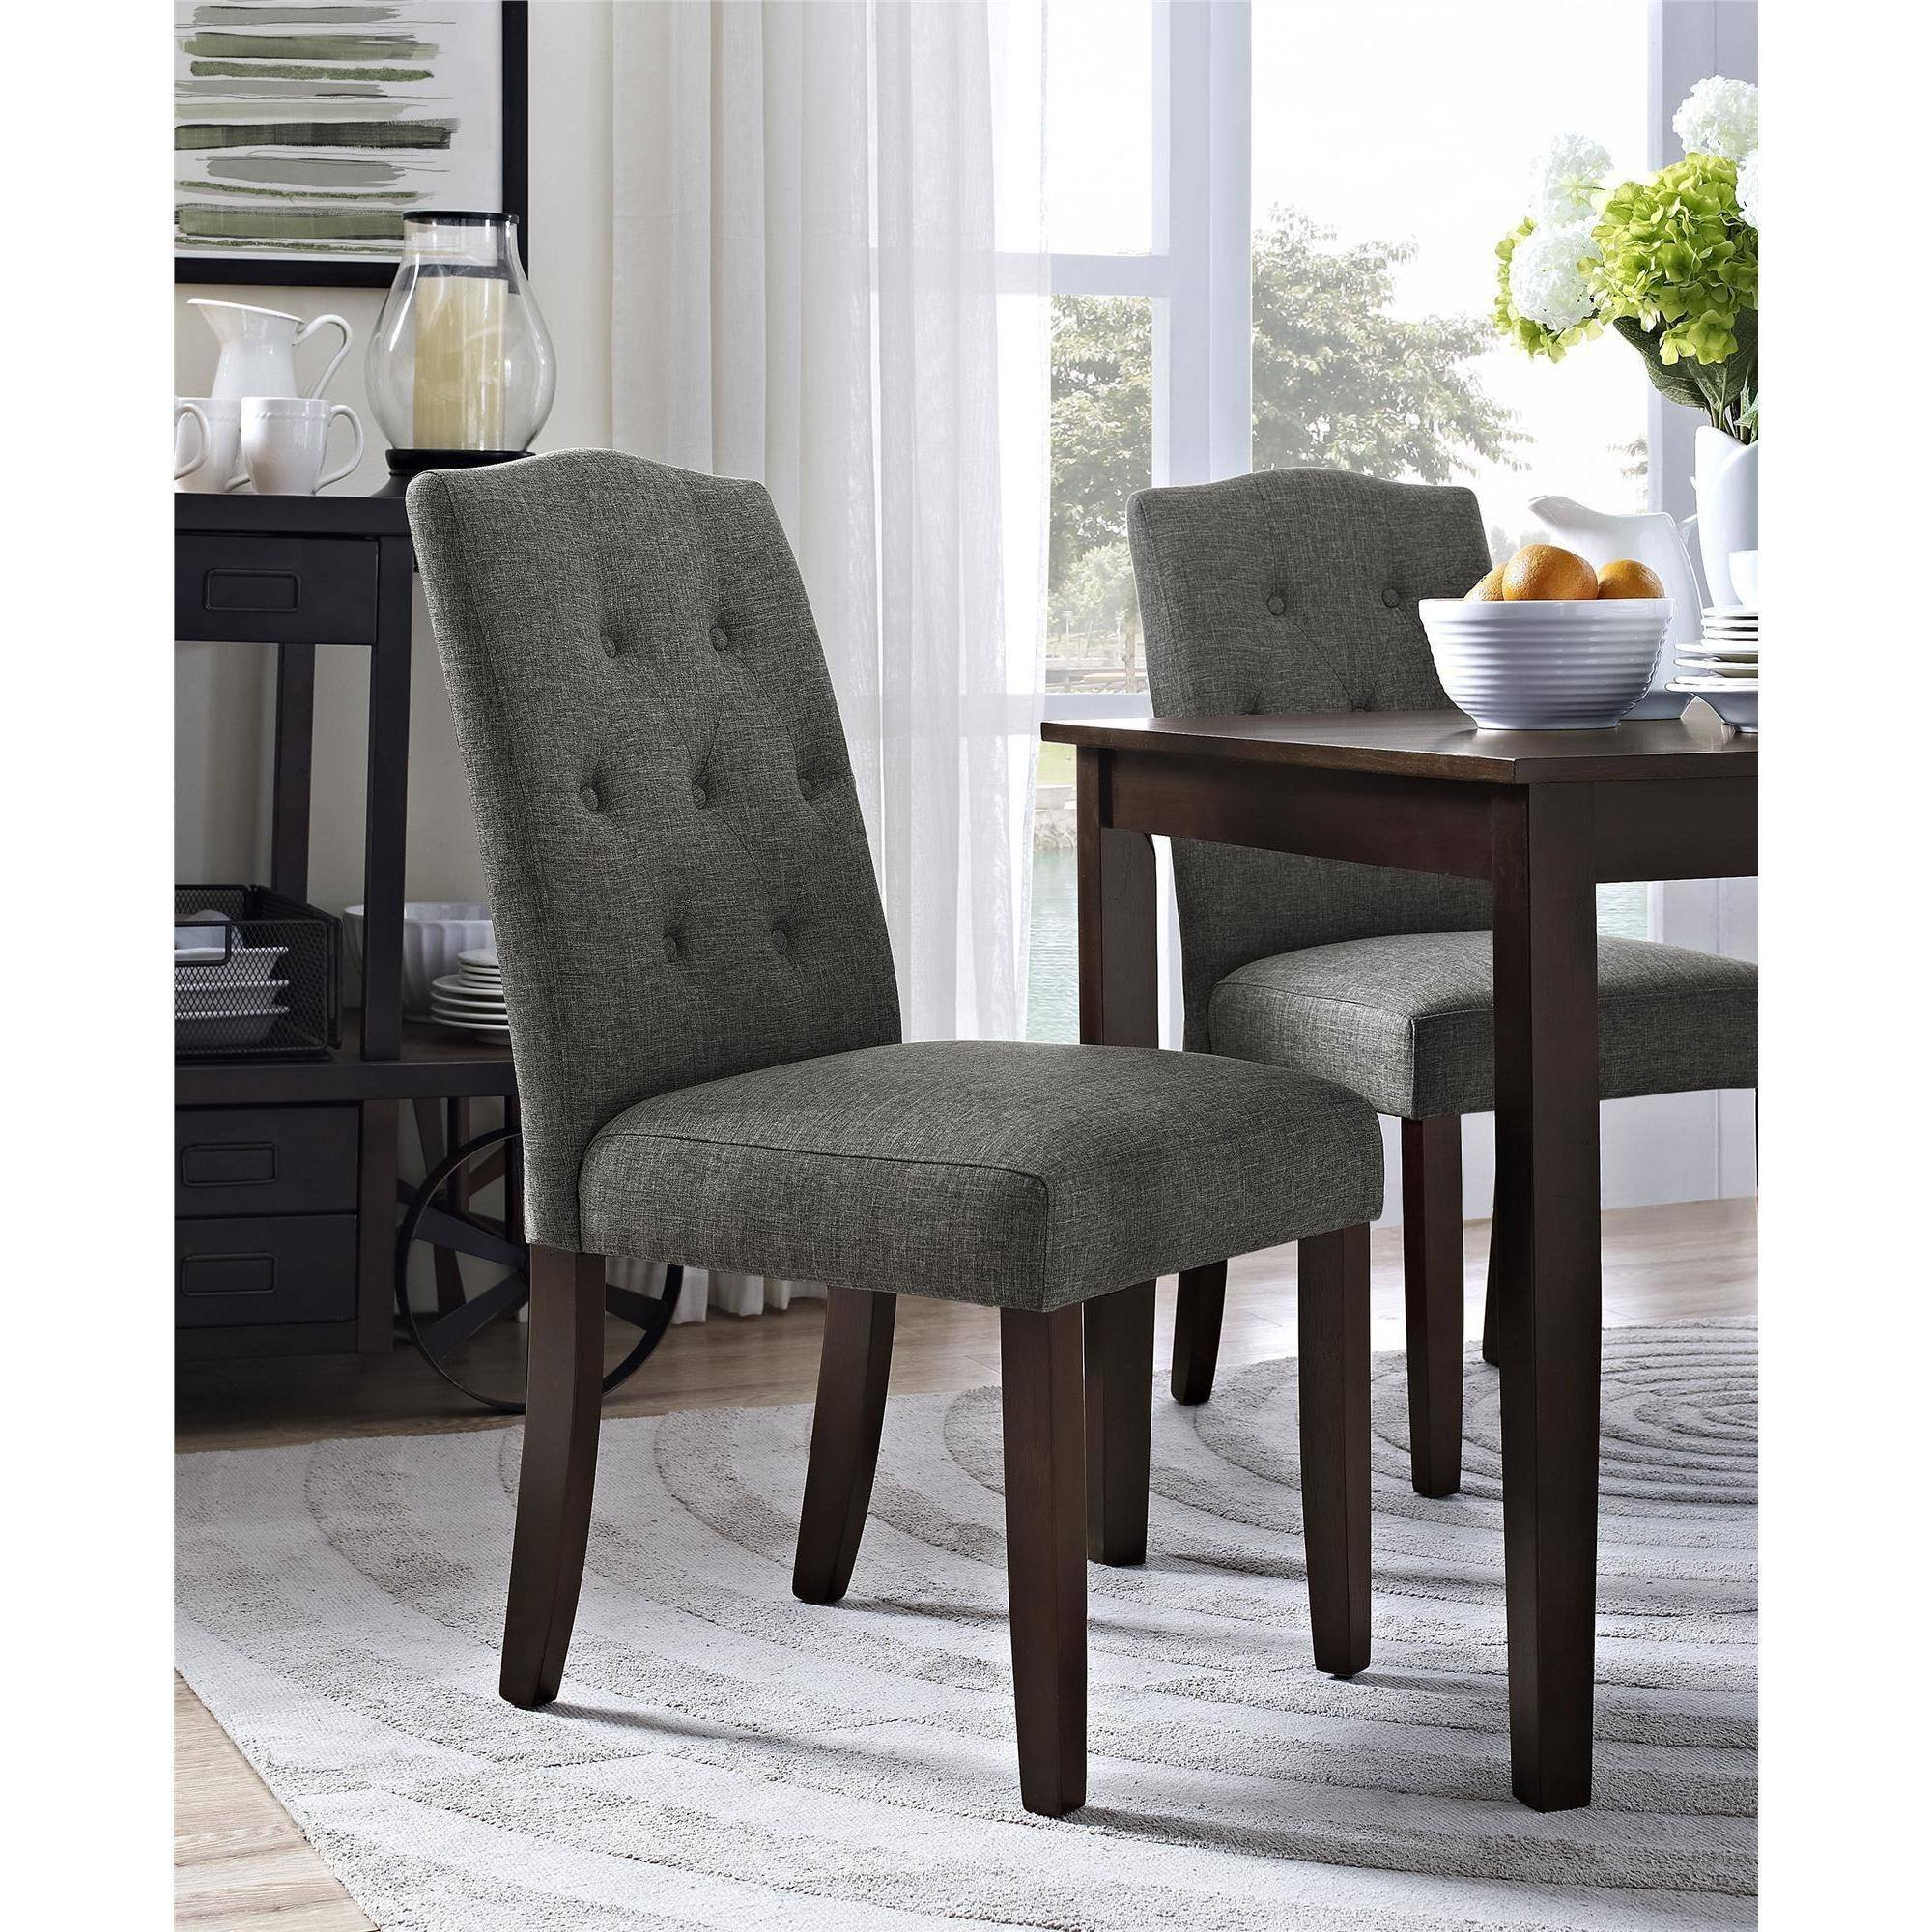 Better Homes and Gardens Parsons Tufted Dining Chair (Gray)